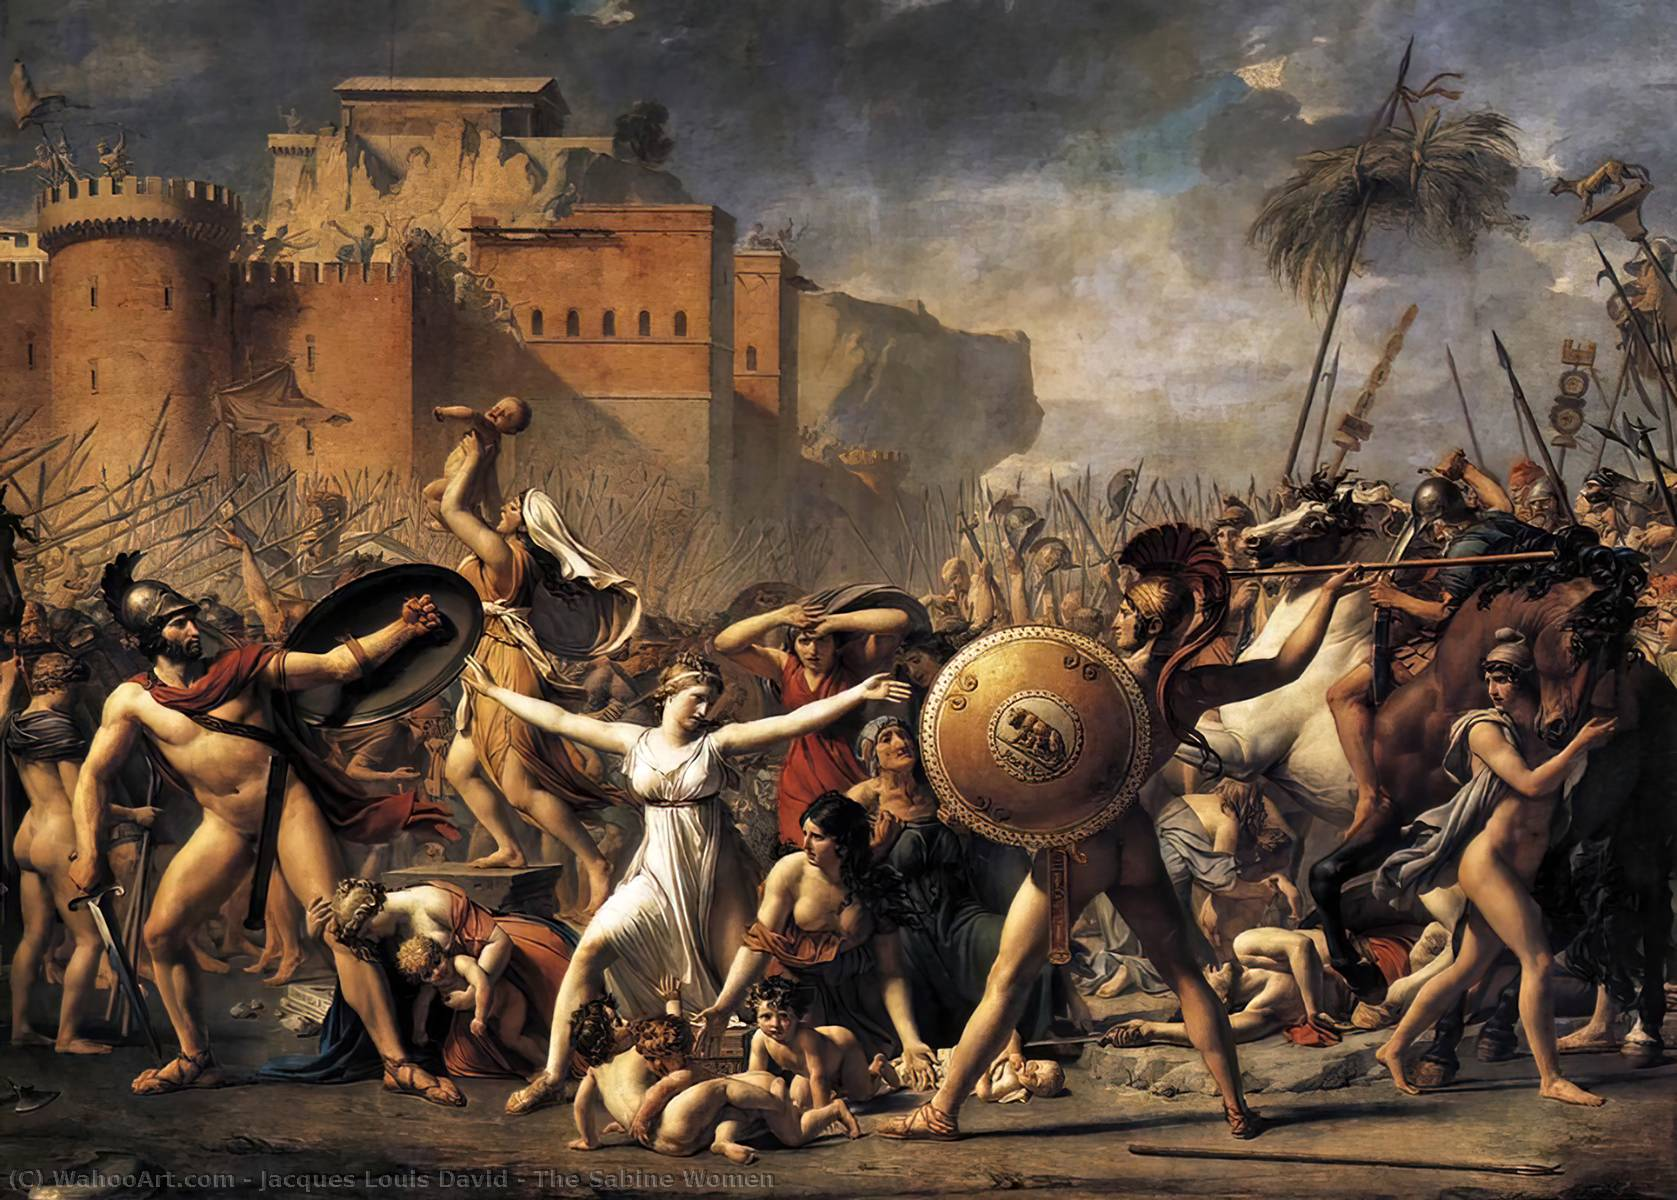 As mulheres de Sabine, 1799 por Jacques Louis David (1748-1800, France) | WahooArt.com